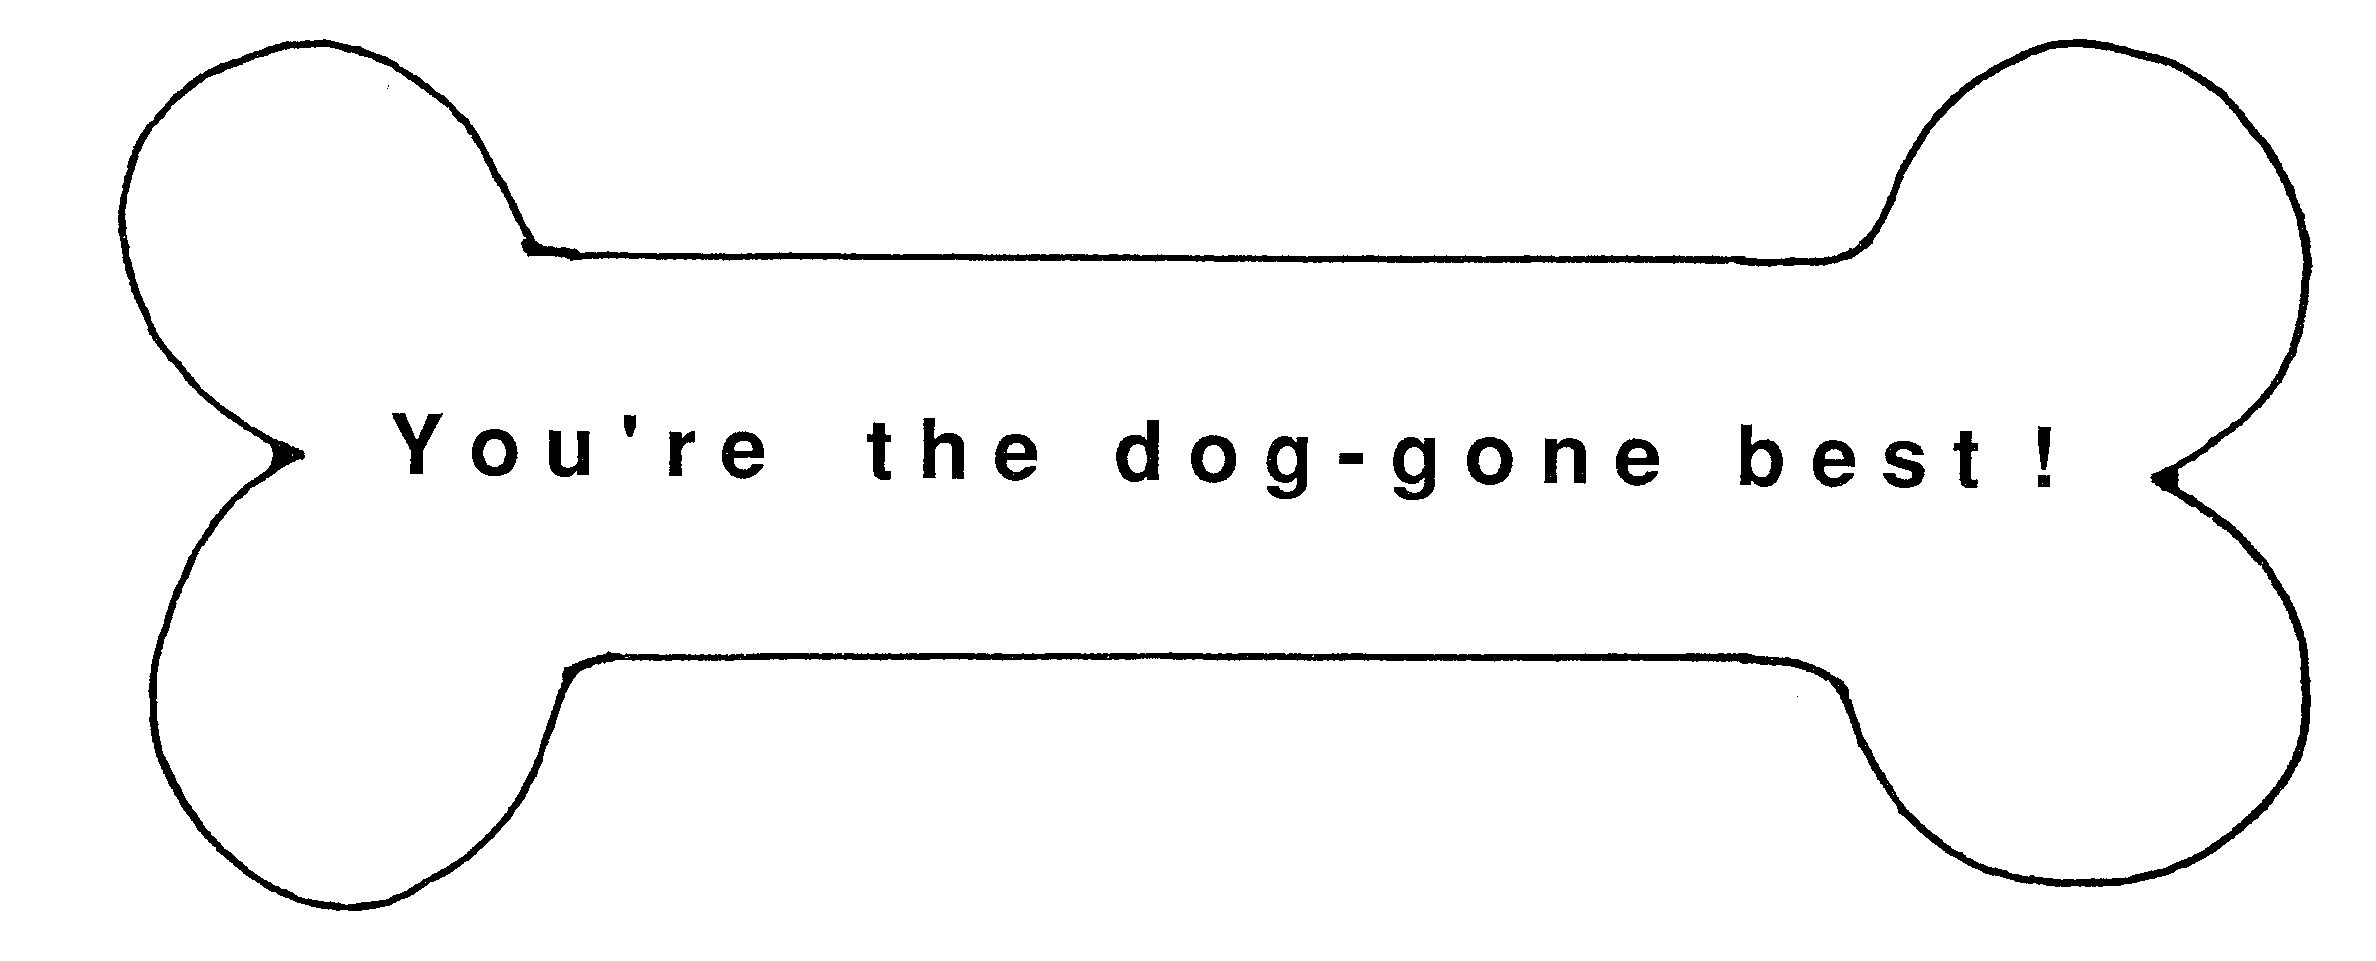 Templates  clipart dog Bone Template Download To Dog